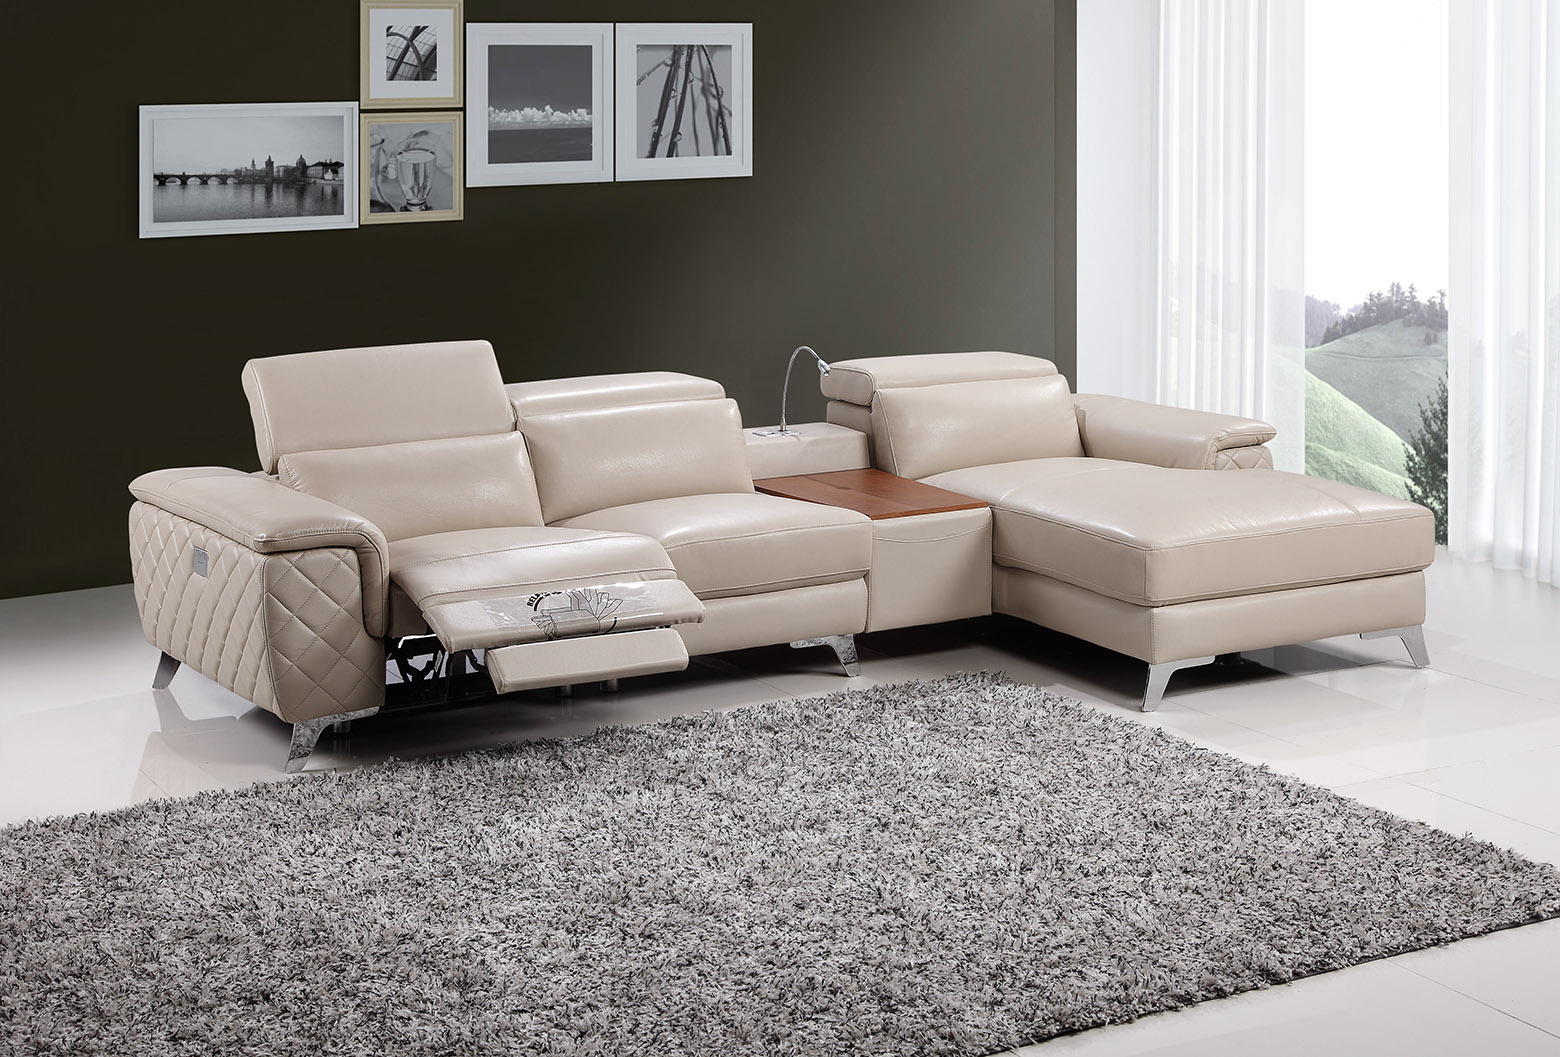 Fay 9159B Chaise Lounge With Electronic Recliner Fortune